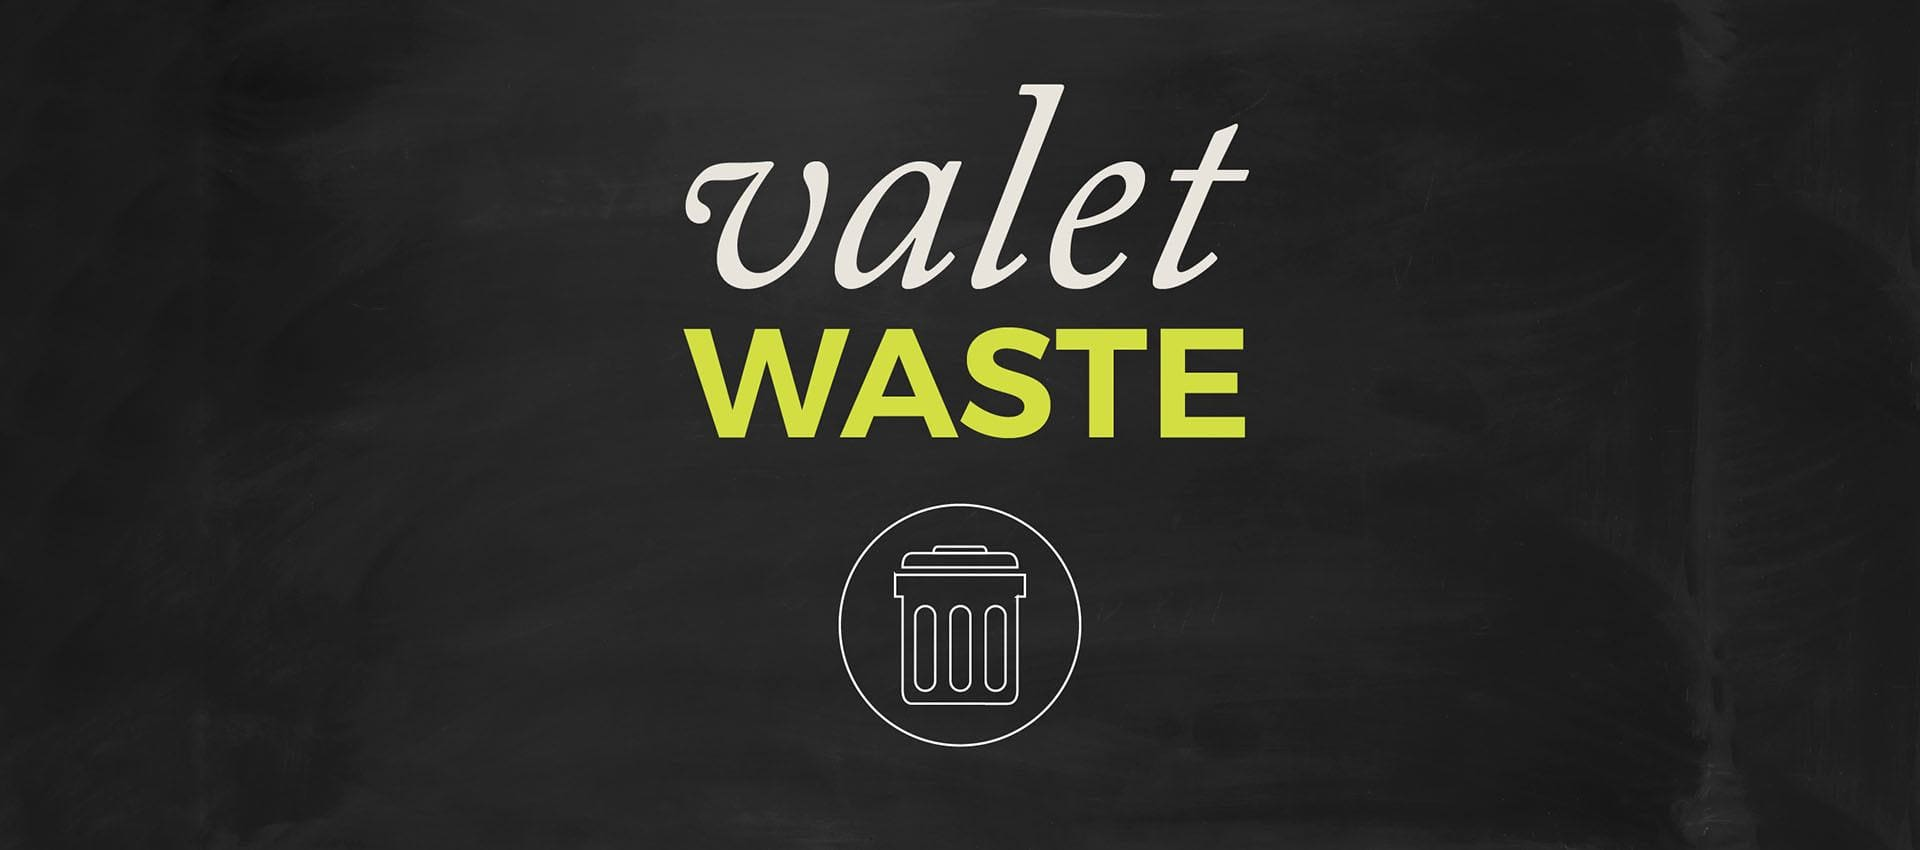 Don't waste time with garbage. Let us handle it at River Oaks Apartment Homes in Vacaville